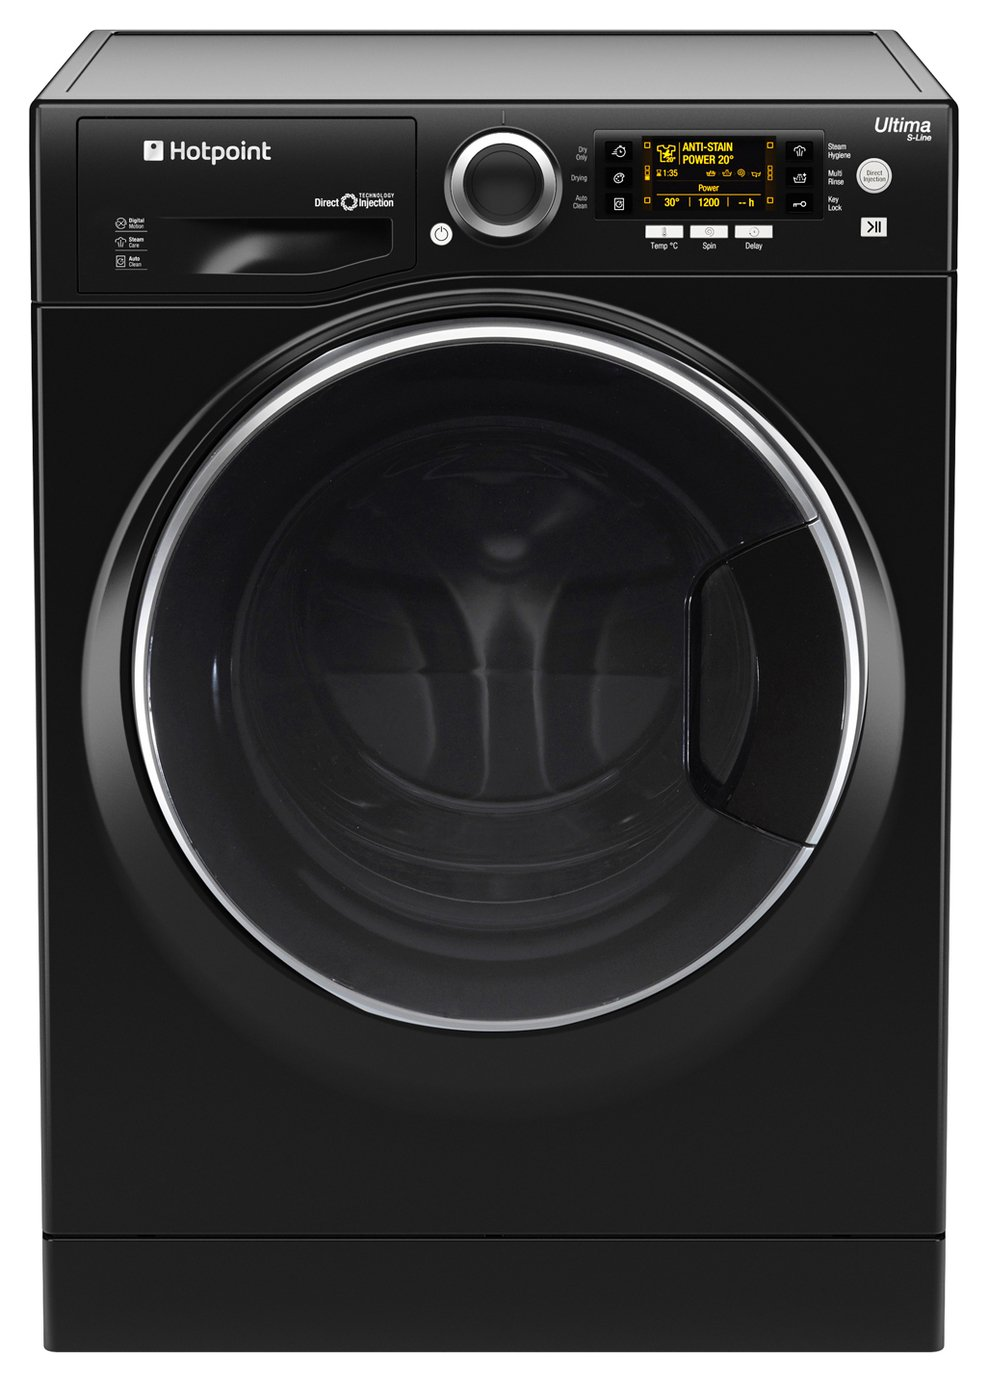 Hotpoint RD966JKD 9KG / 6KG 1600 Spin Washer Dryer - Black